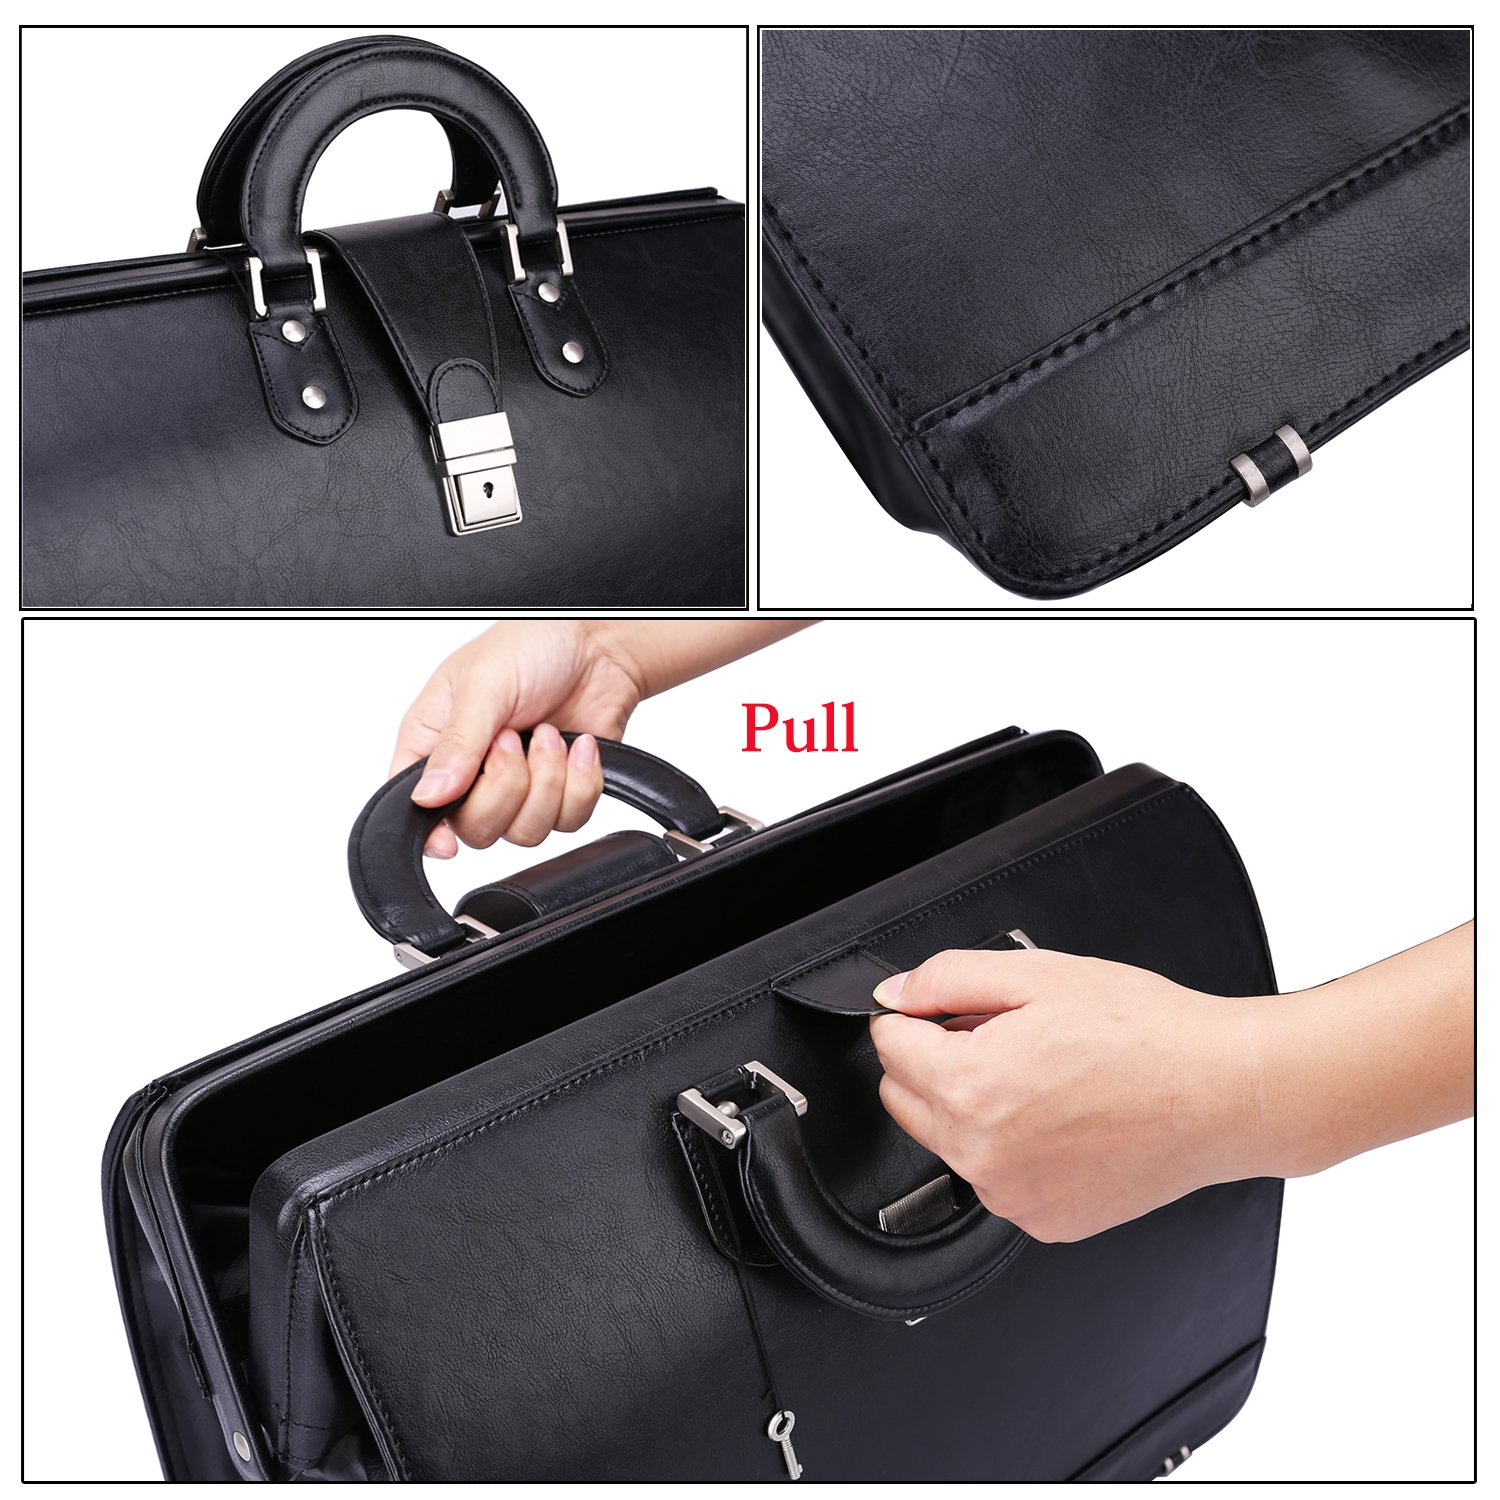 Ronts Mens PU Leather Briefcase Lawyer Attache Case with Lock 15.6 Inch Laptop Business Bag, Black by Ronts (Image #5)